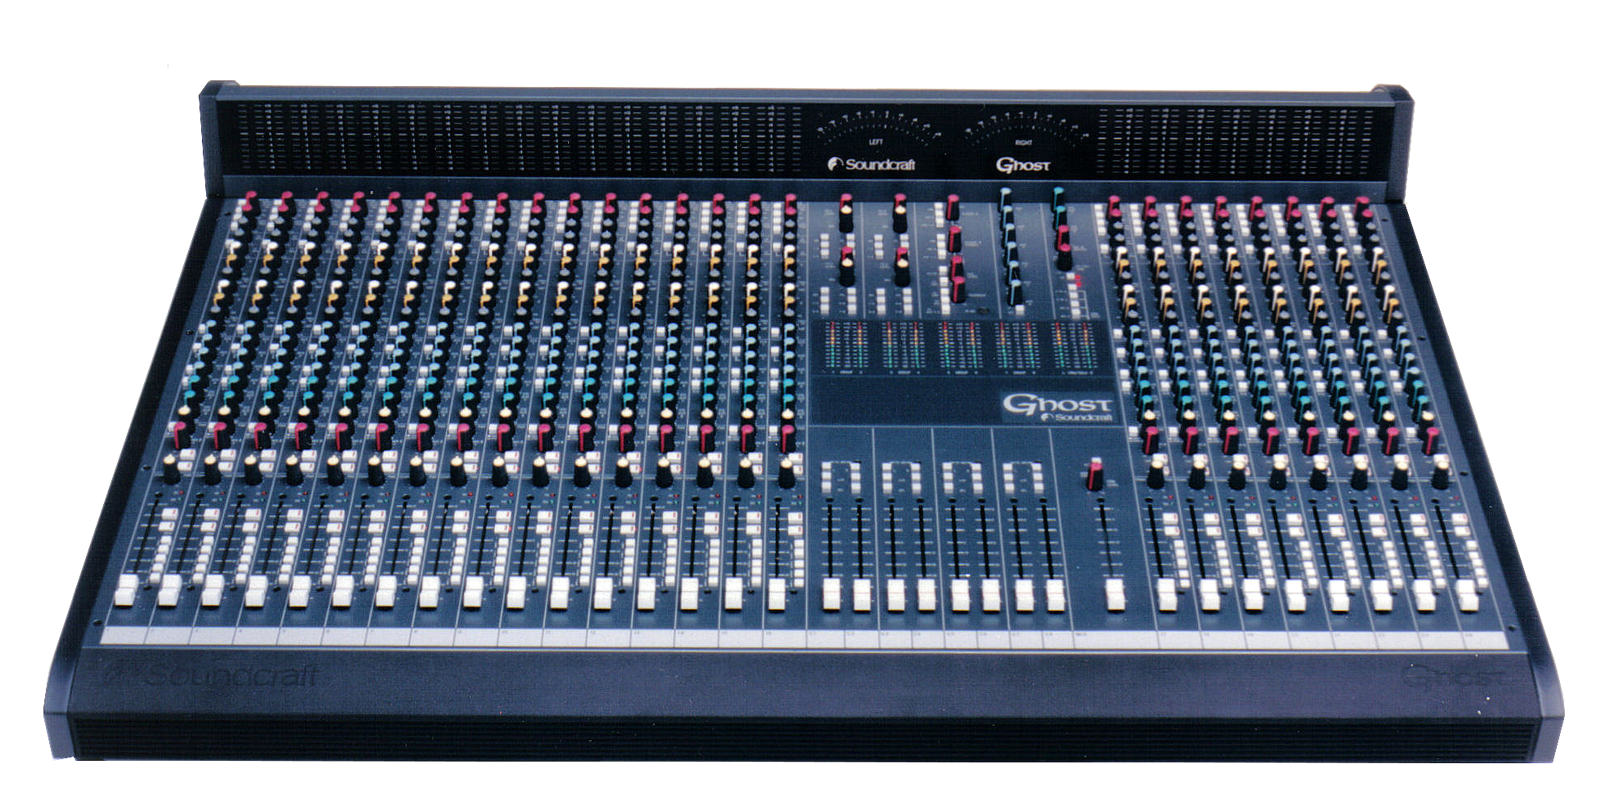 Ghost Soundcraft Professional Audio Mixers